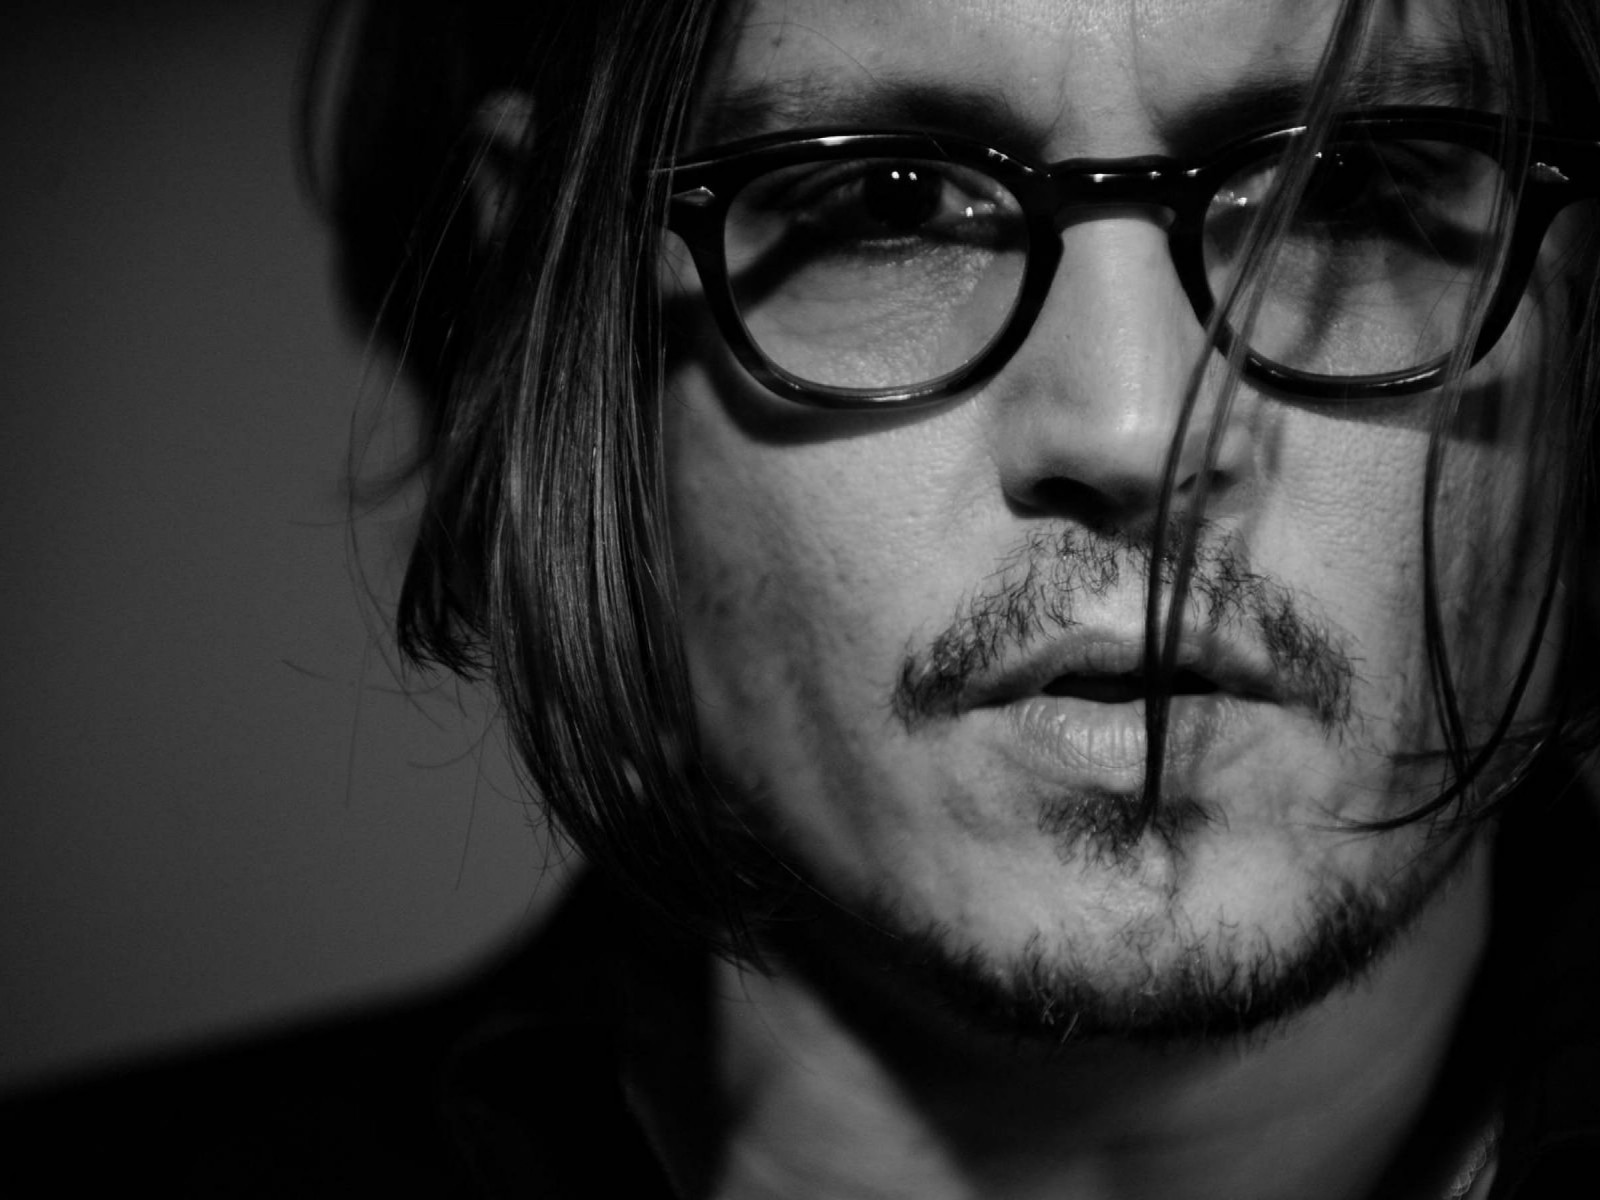 Johnny Depp Black & White Portrait Wallpaper for Desktop 1600x1200